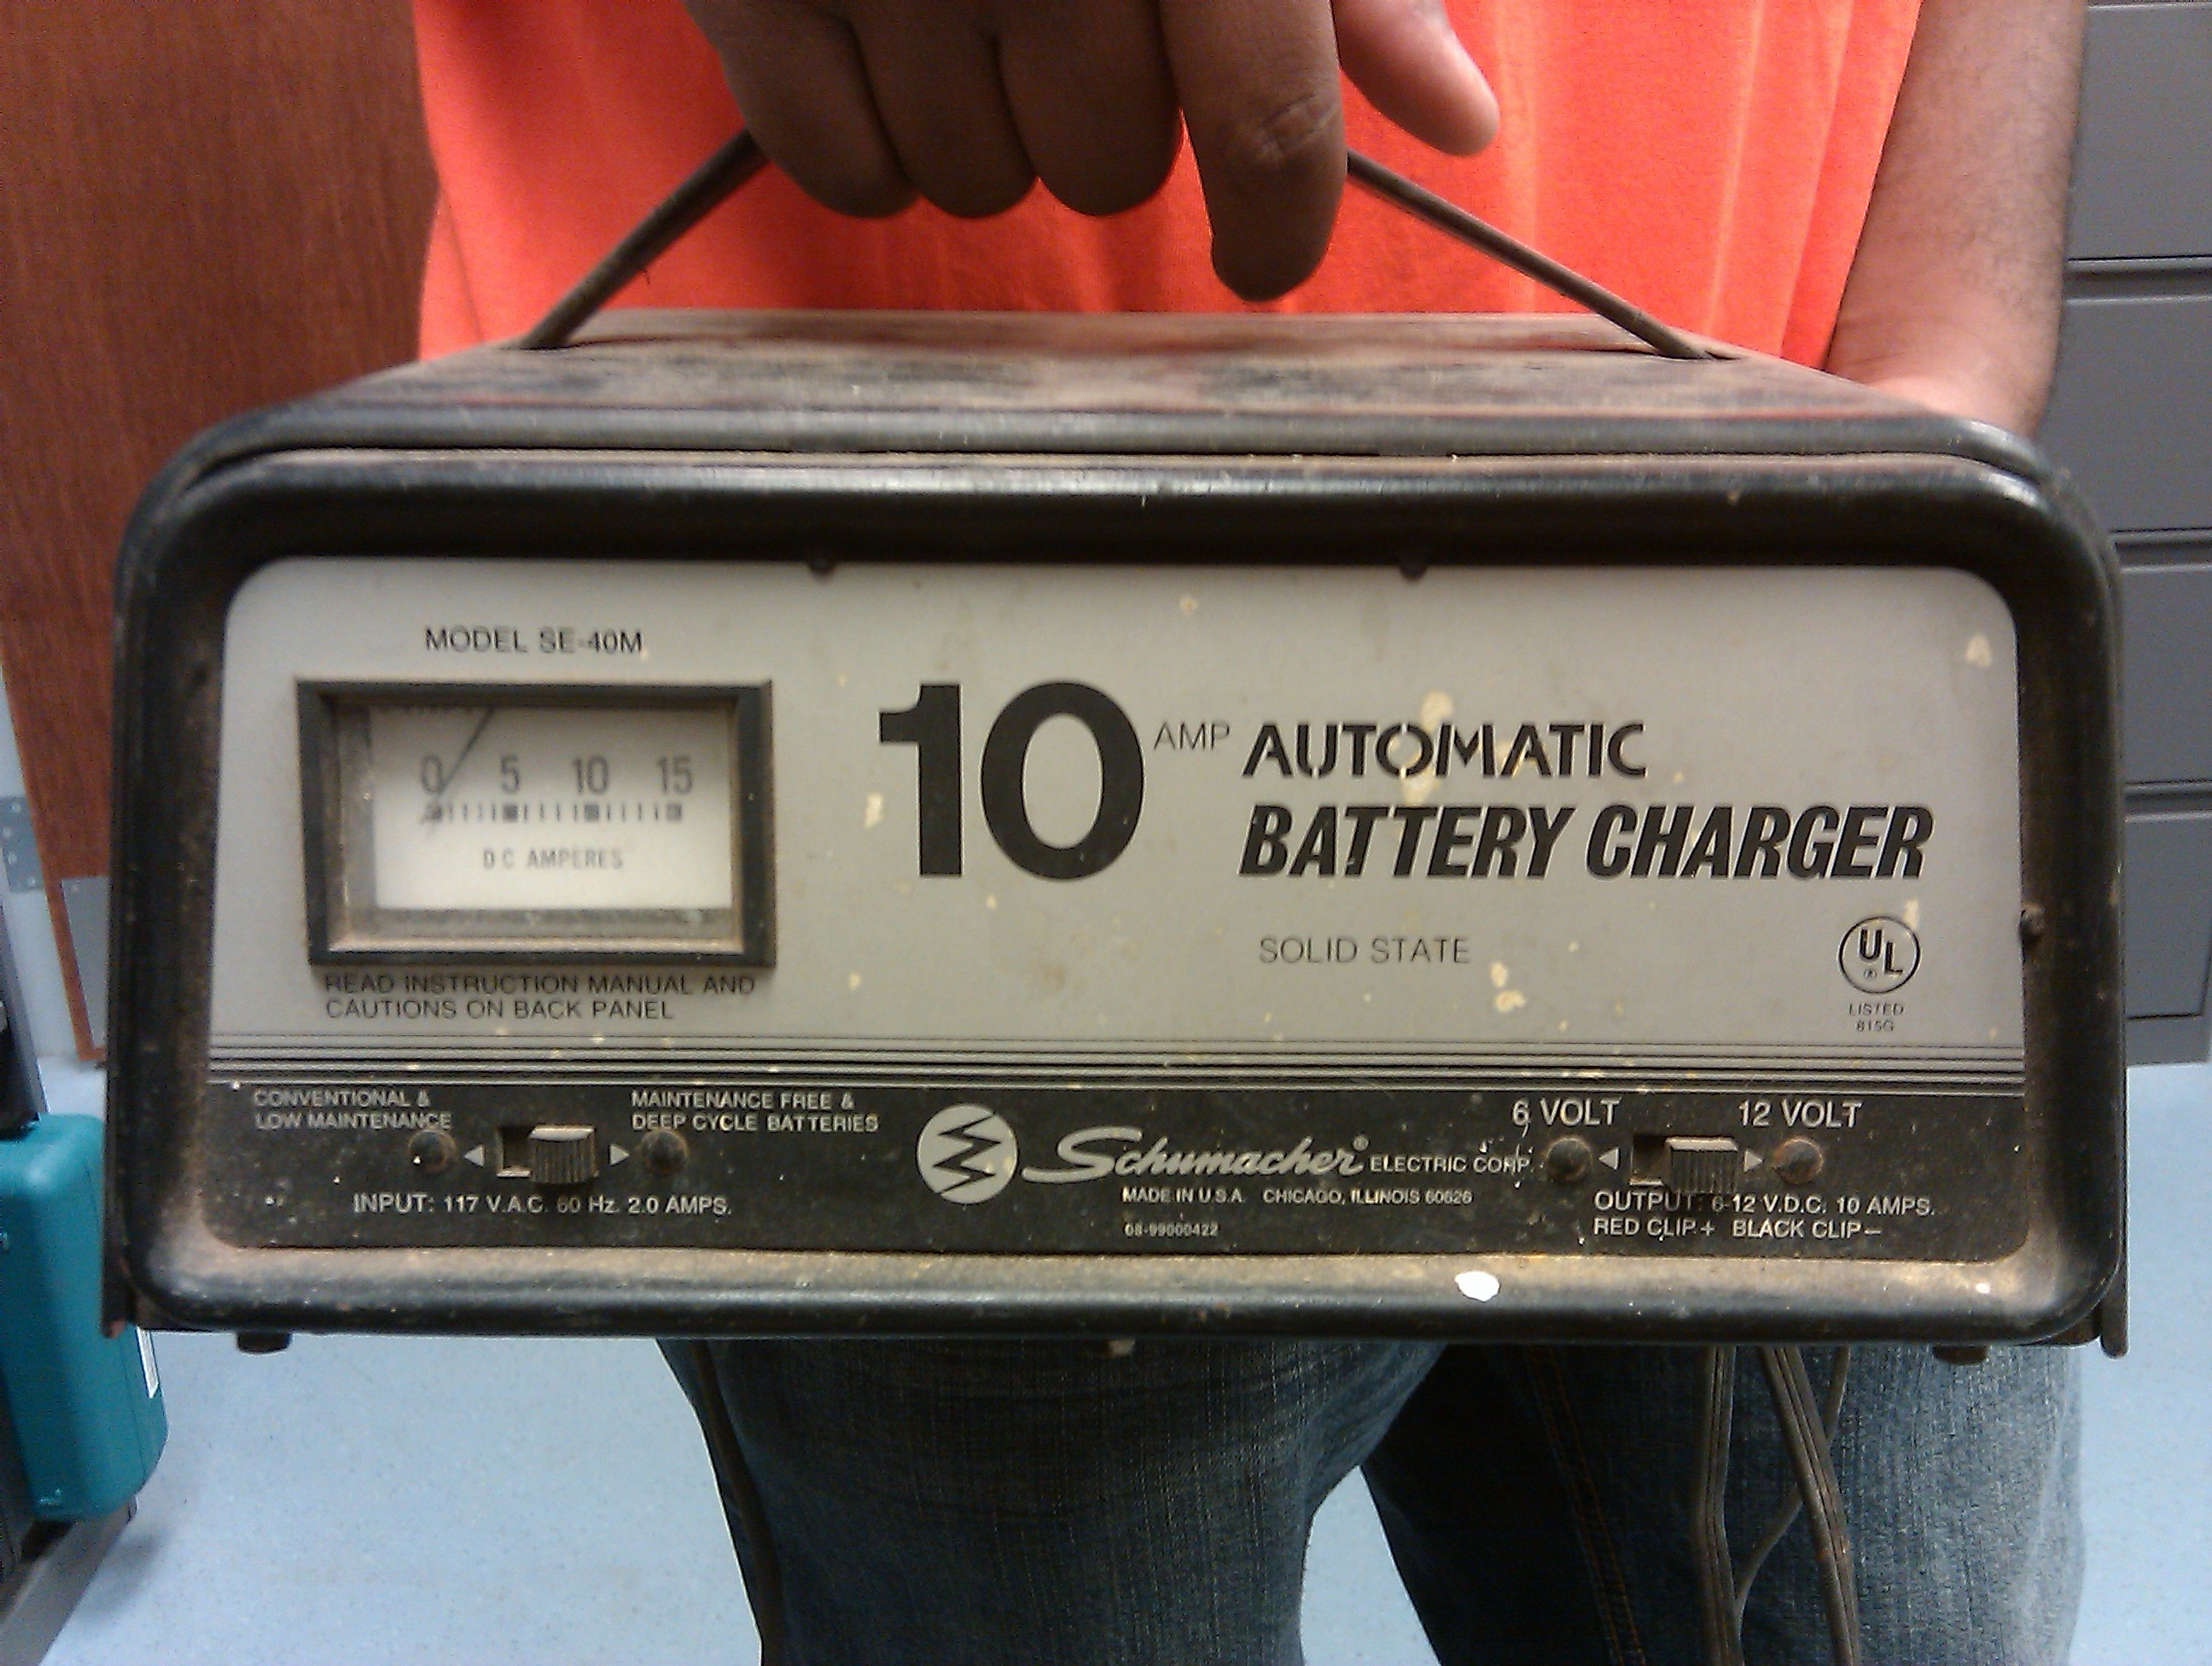 Battery Charger Qualitymade In The Usa